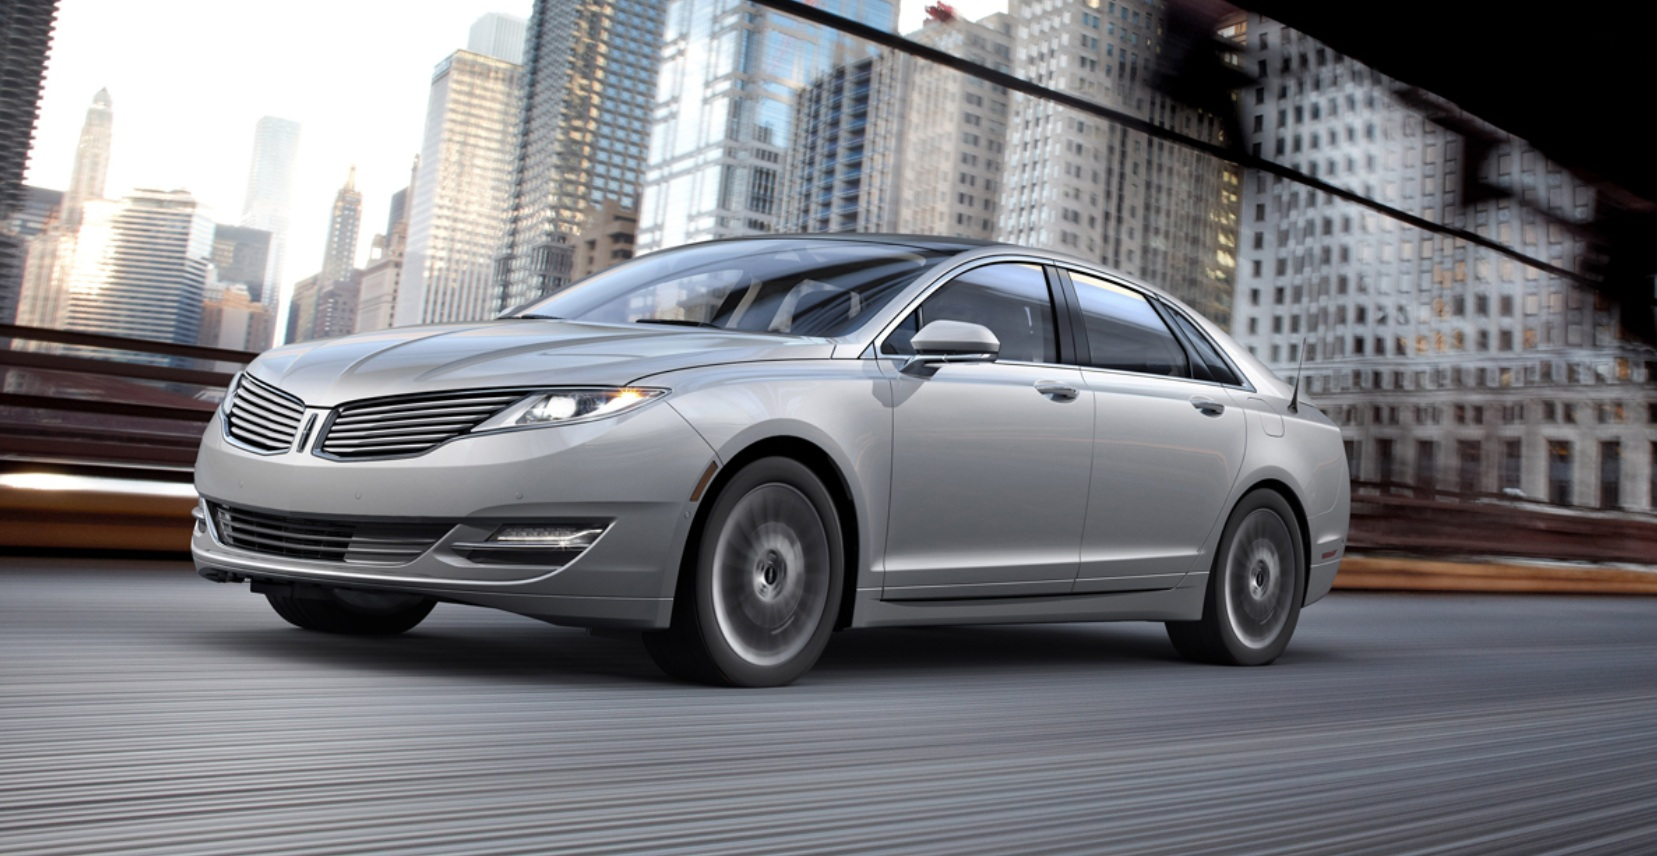 Lincoln Mkz #4